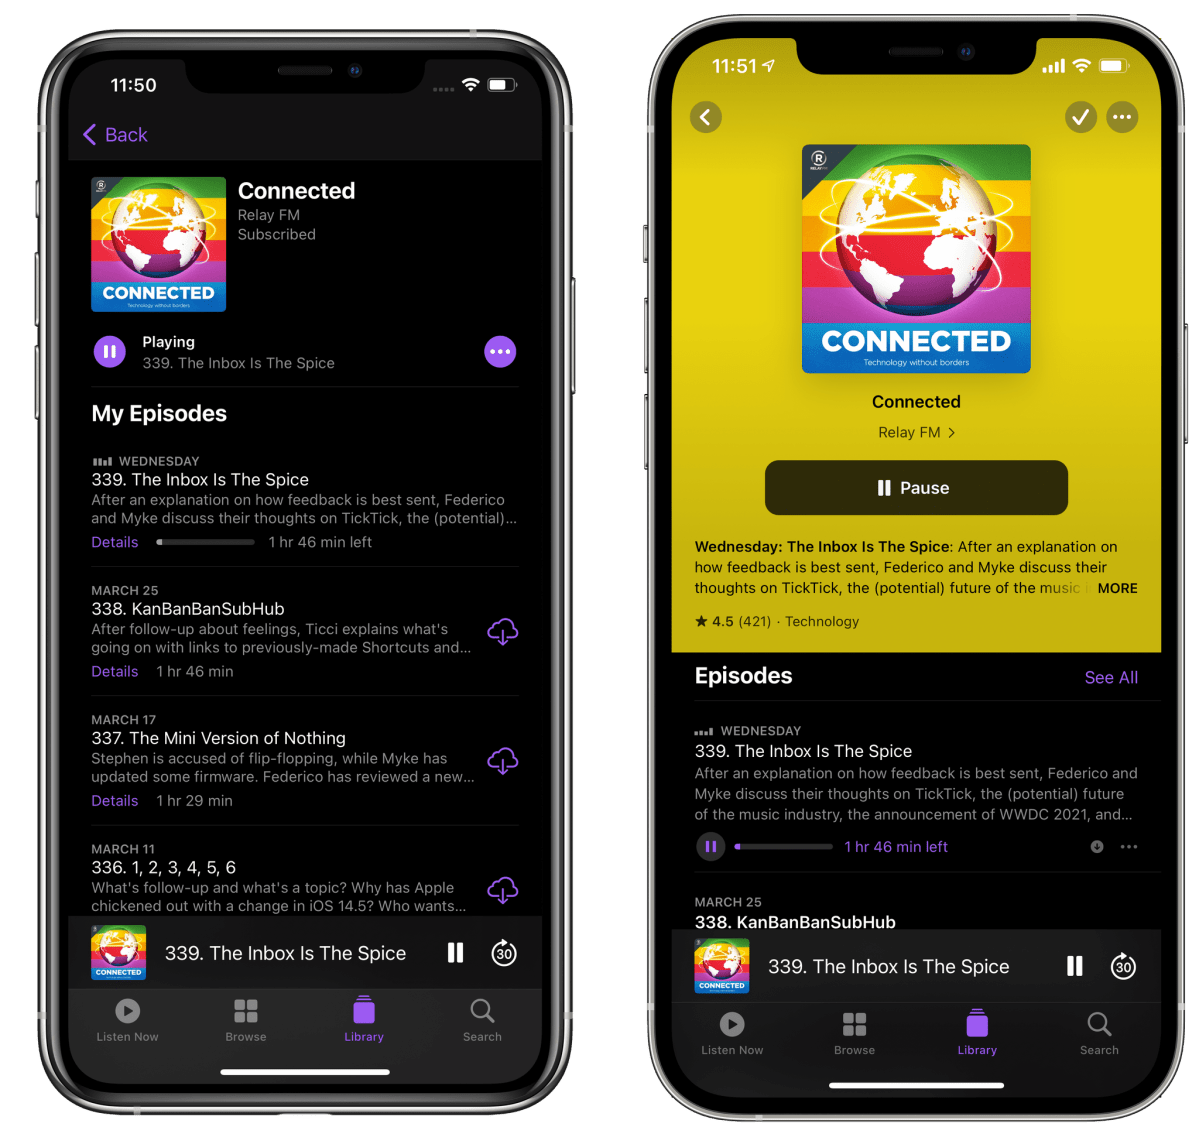 Redesigned show pages in Podcasts (right) put greater emphasis on show artwork and playback controls.